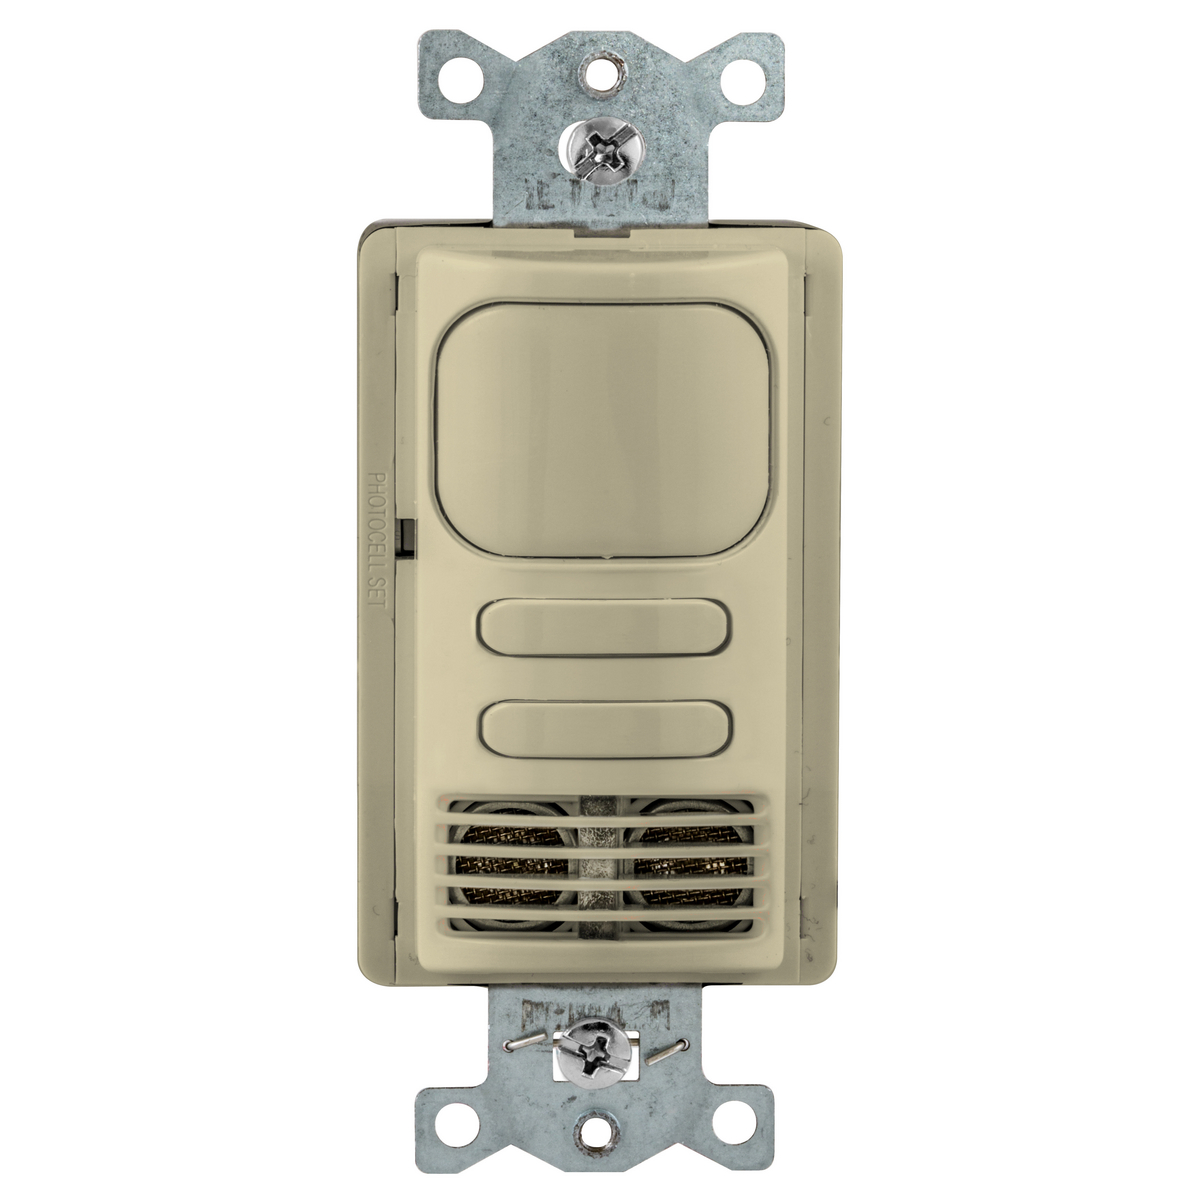 Ad2241i2 Wall Switch Sensors Lighting Controls Wiring Devices Electrical Switches Wbp Ad2000i2 Prodimage Plate